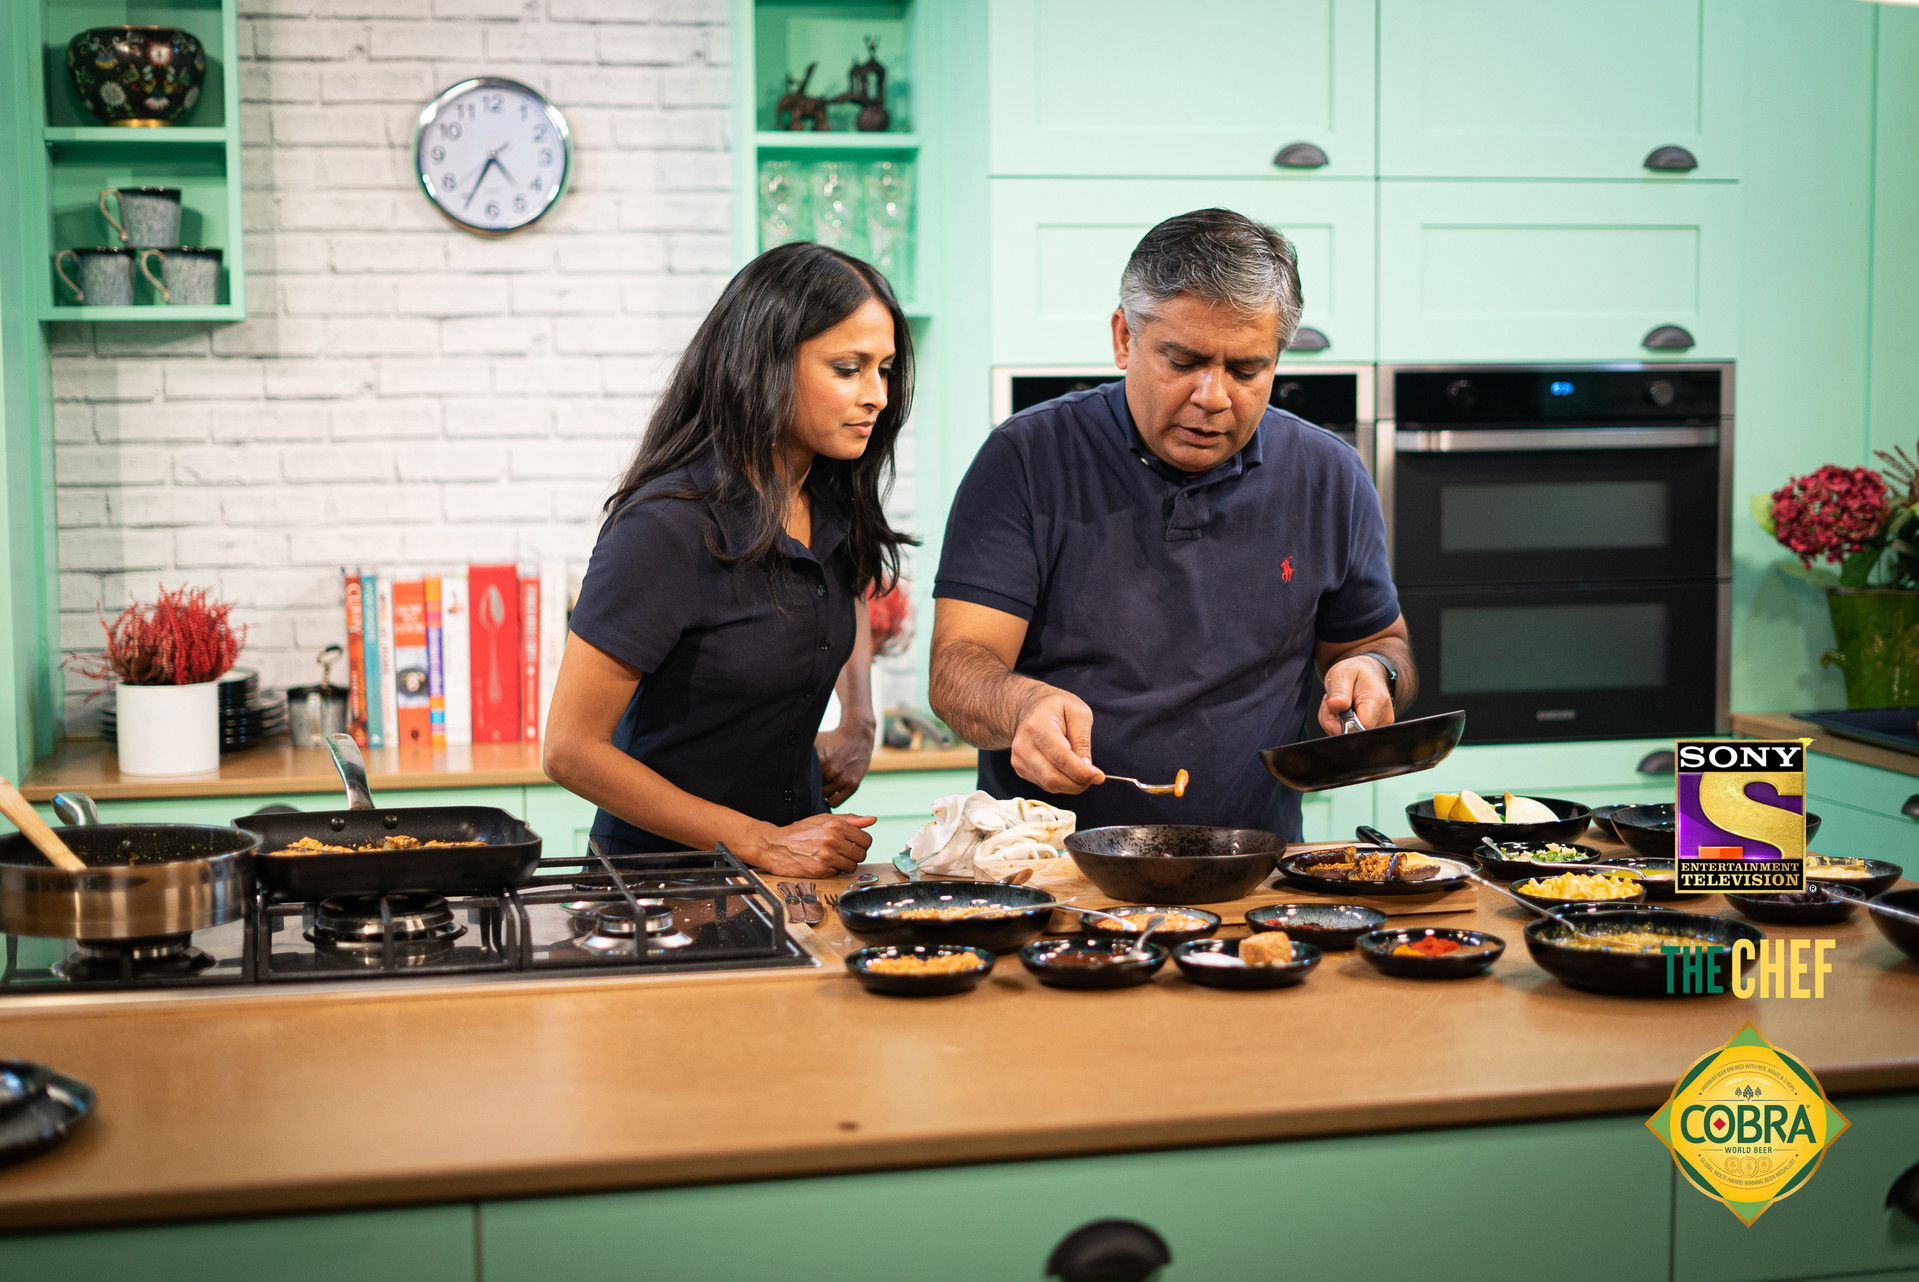 'The Chef' on Sony TV